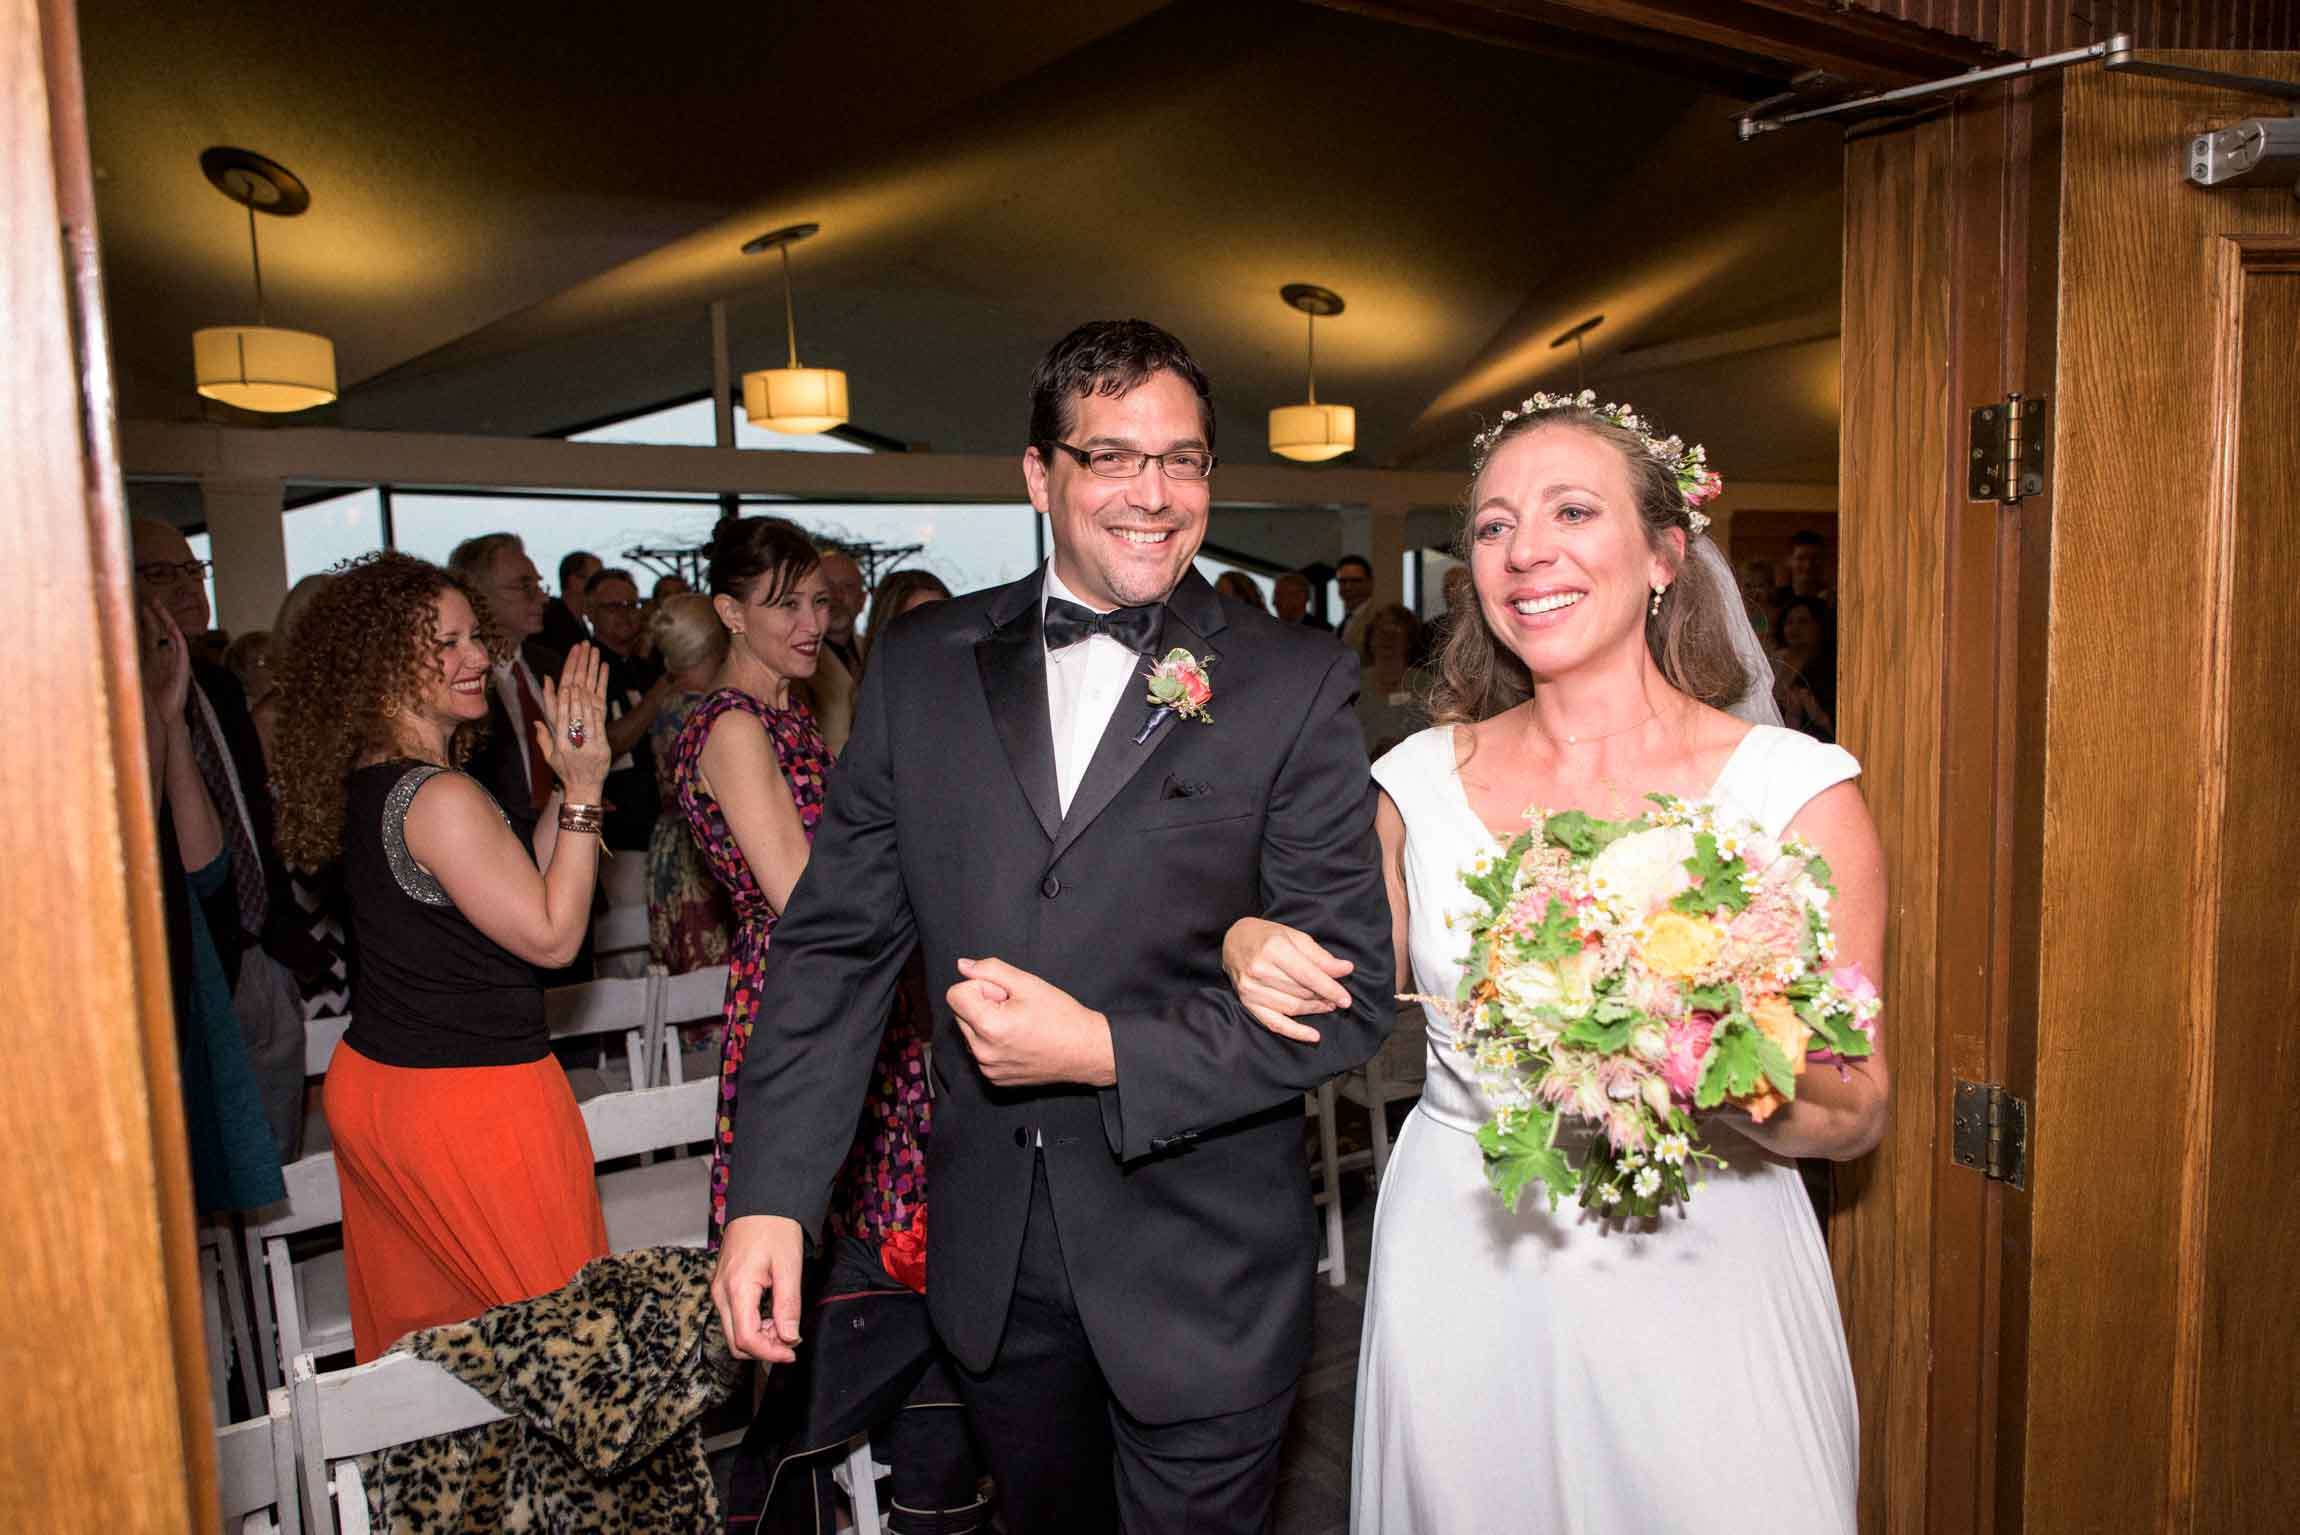 017_lacanada_wedding_losangeles_photography.jpg